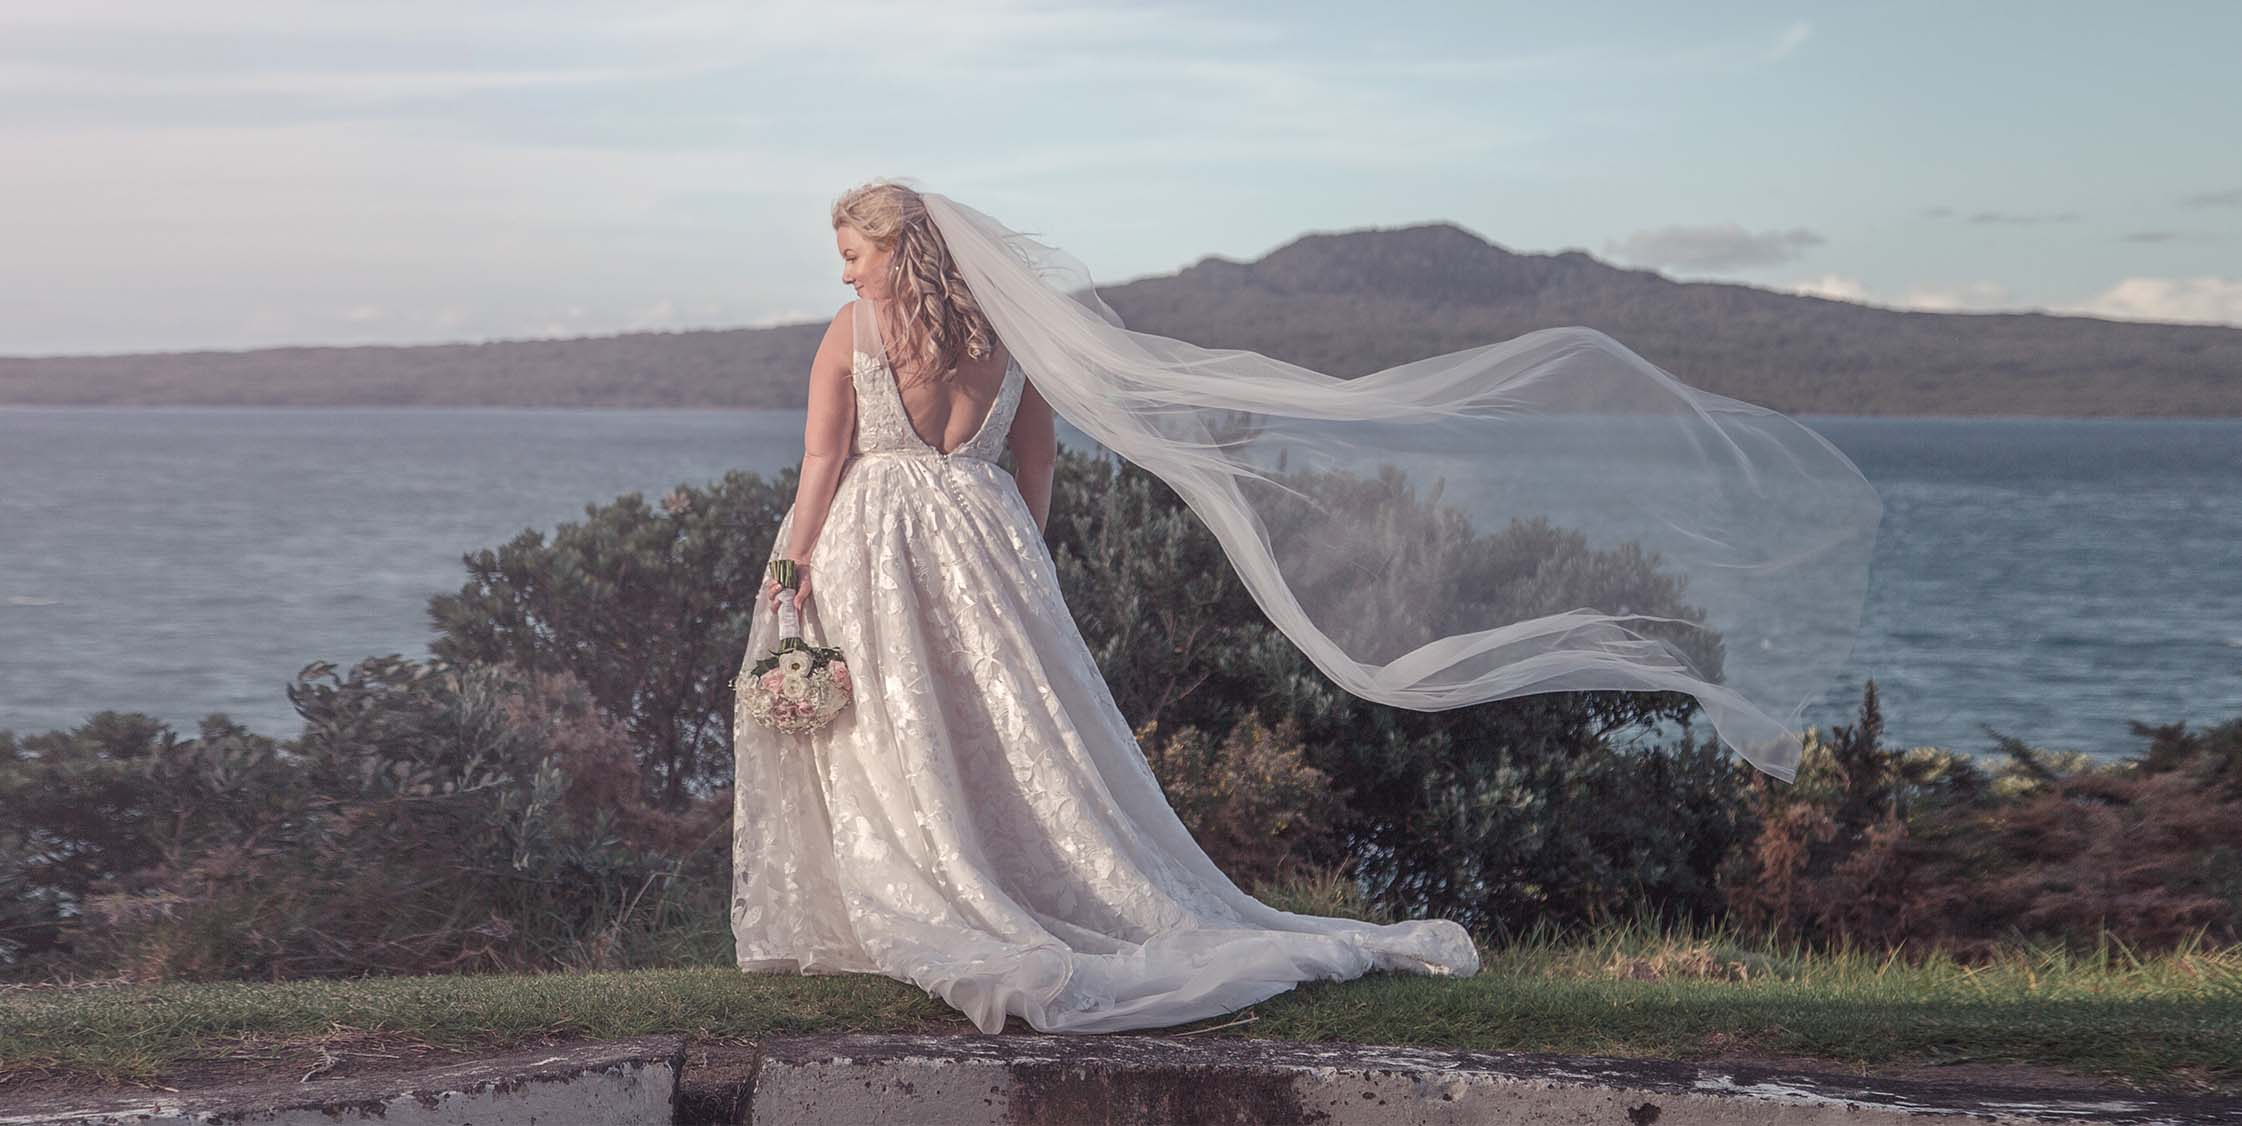 Sunset wedding photo of bride in white wedding dress with her Veil blowing in the wind holding her bridal flower bouquet posing for Chris Loufte Auckland Wedding Photographers in front of Rangitoto island at Fort Takapuna and the Officers Mess on a sunny evening in Auckland.